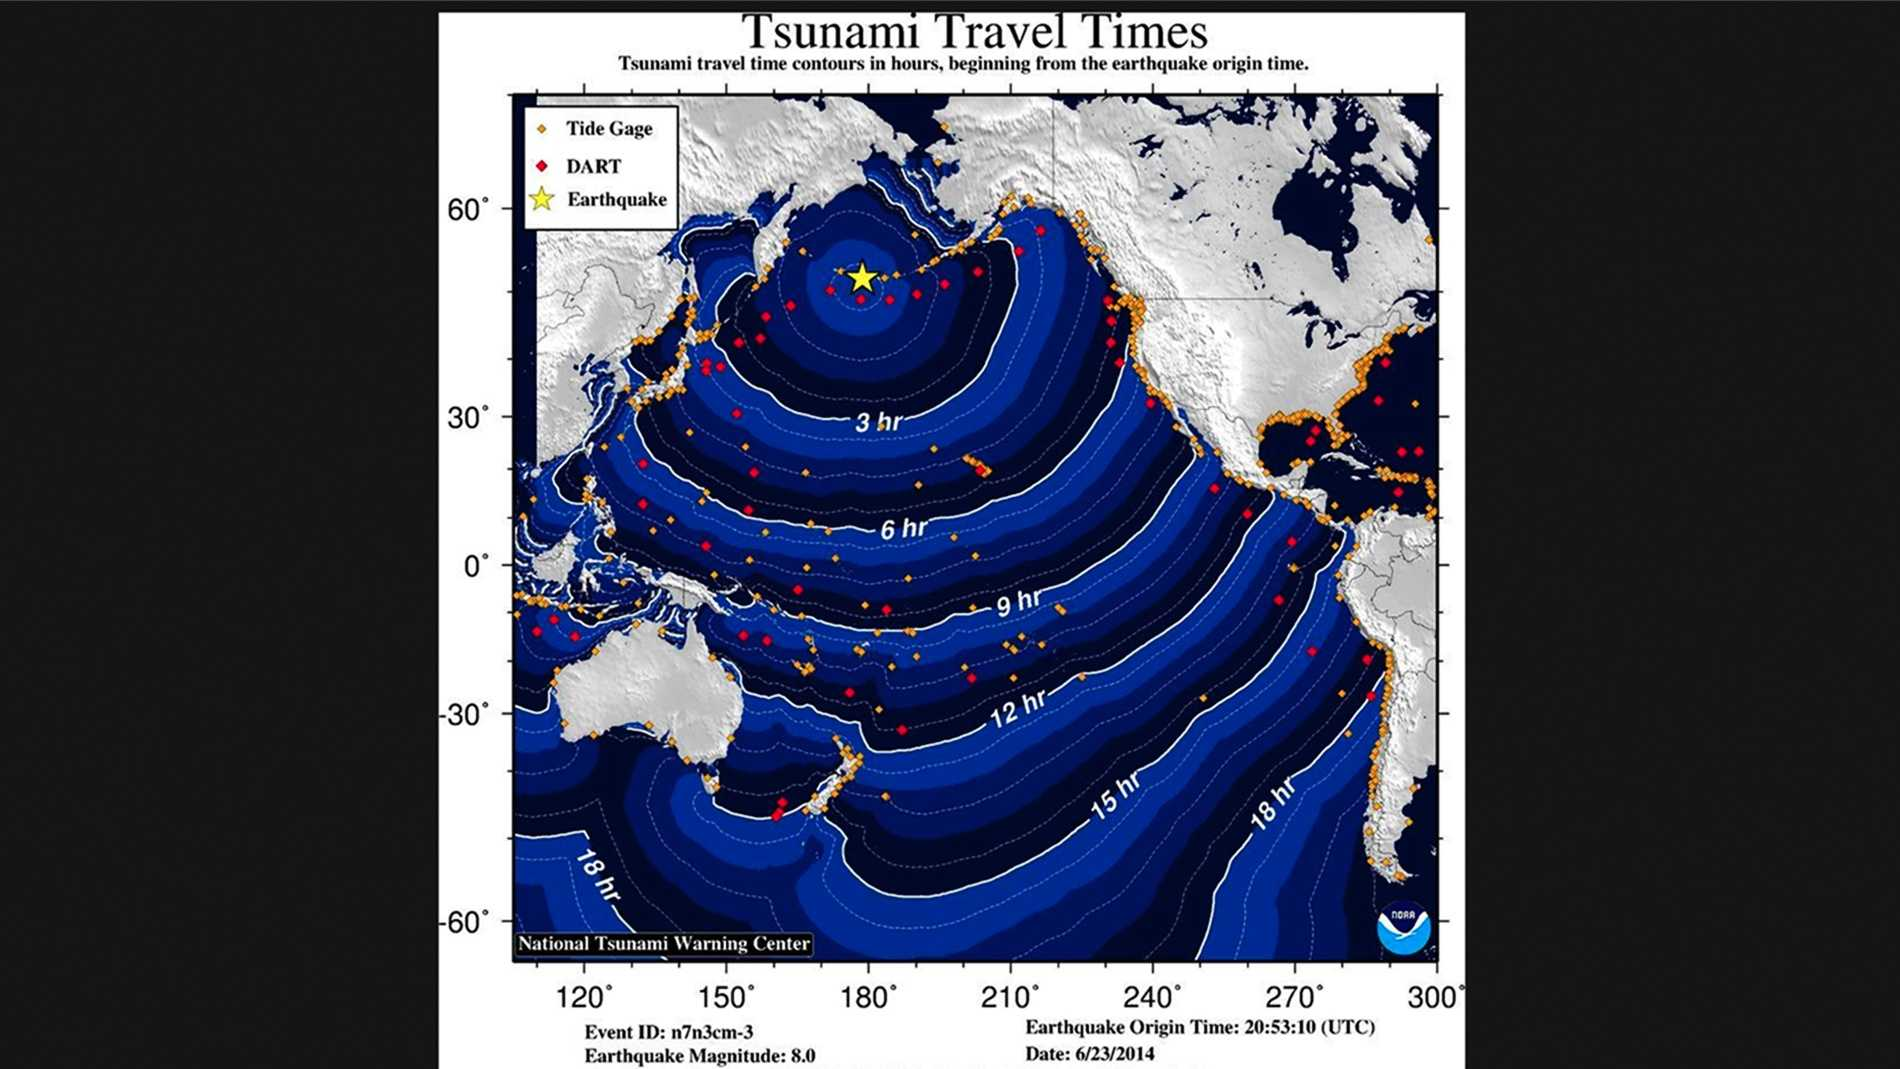 NOAA created this tsunami travel time map.